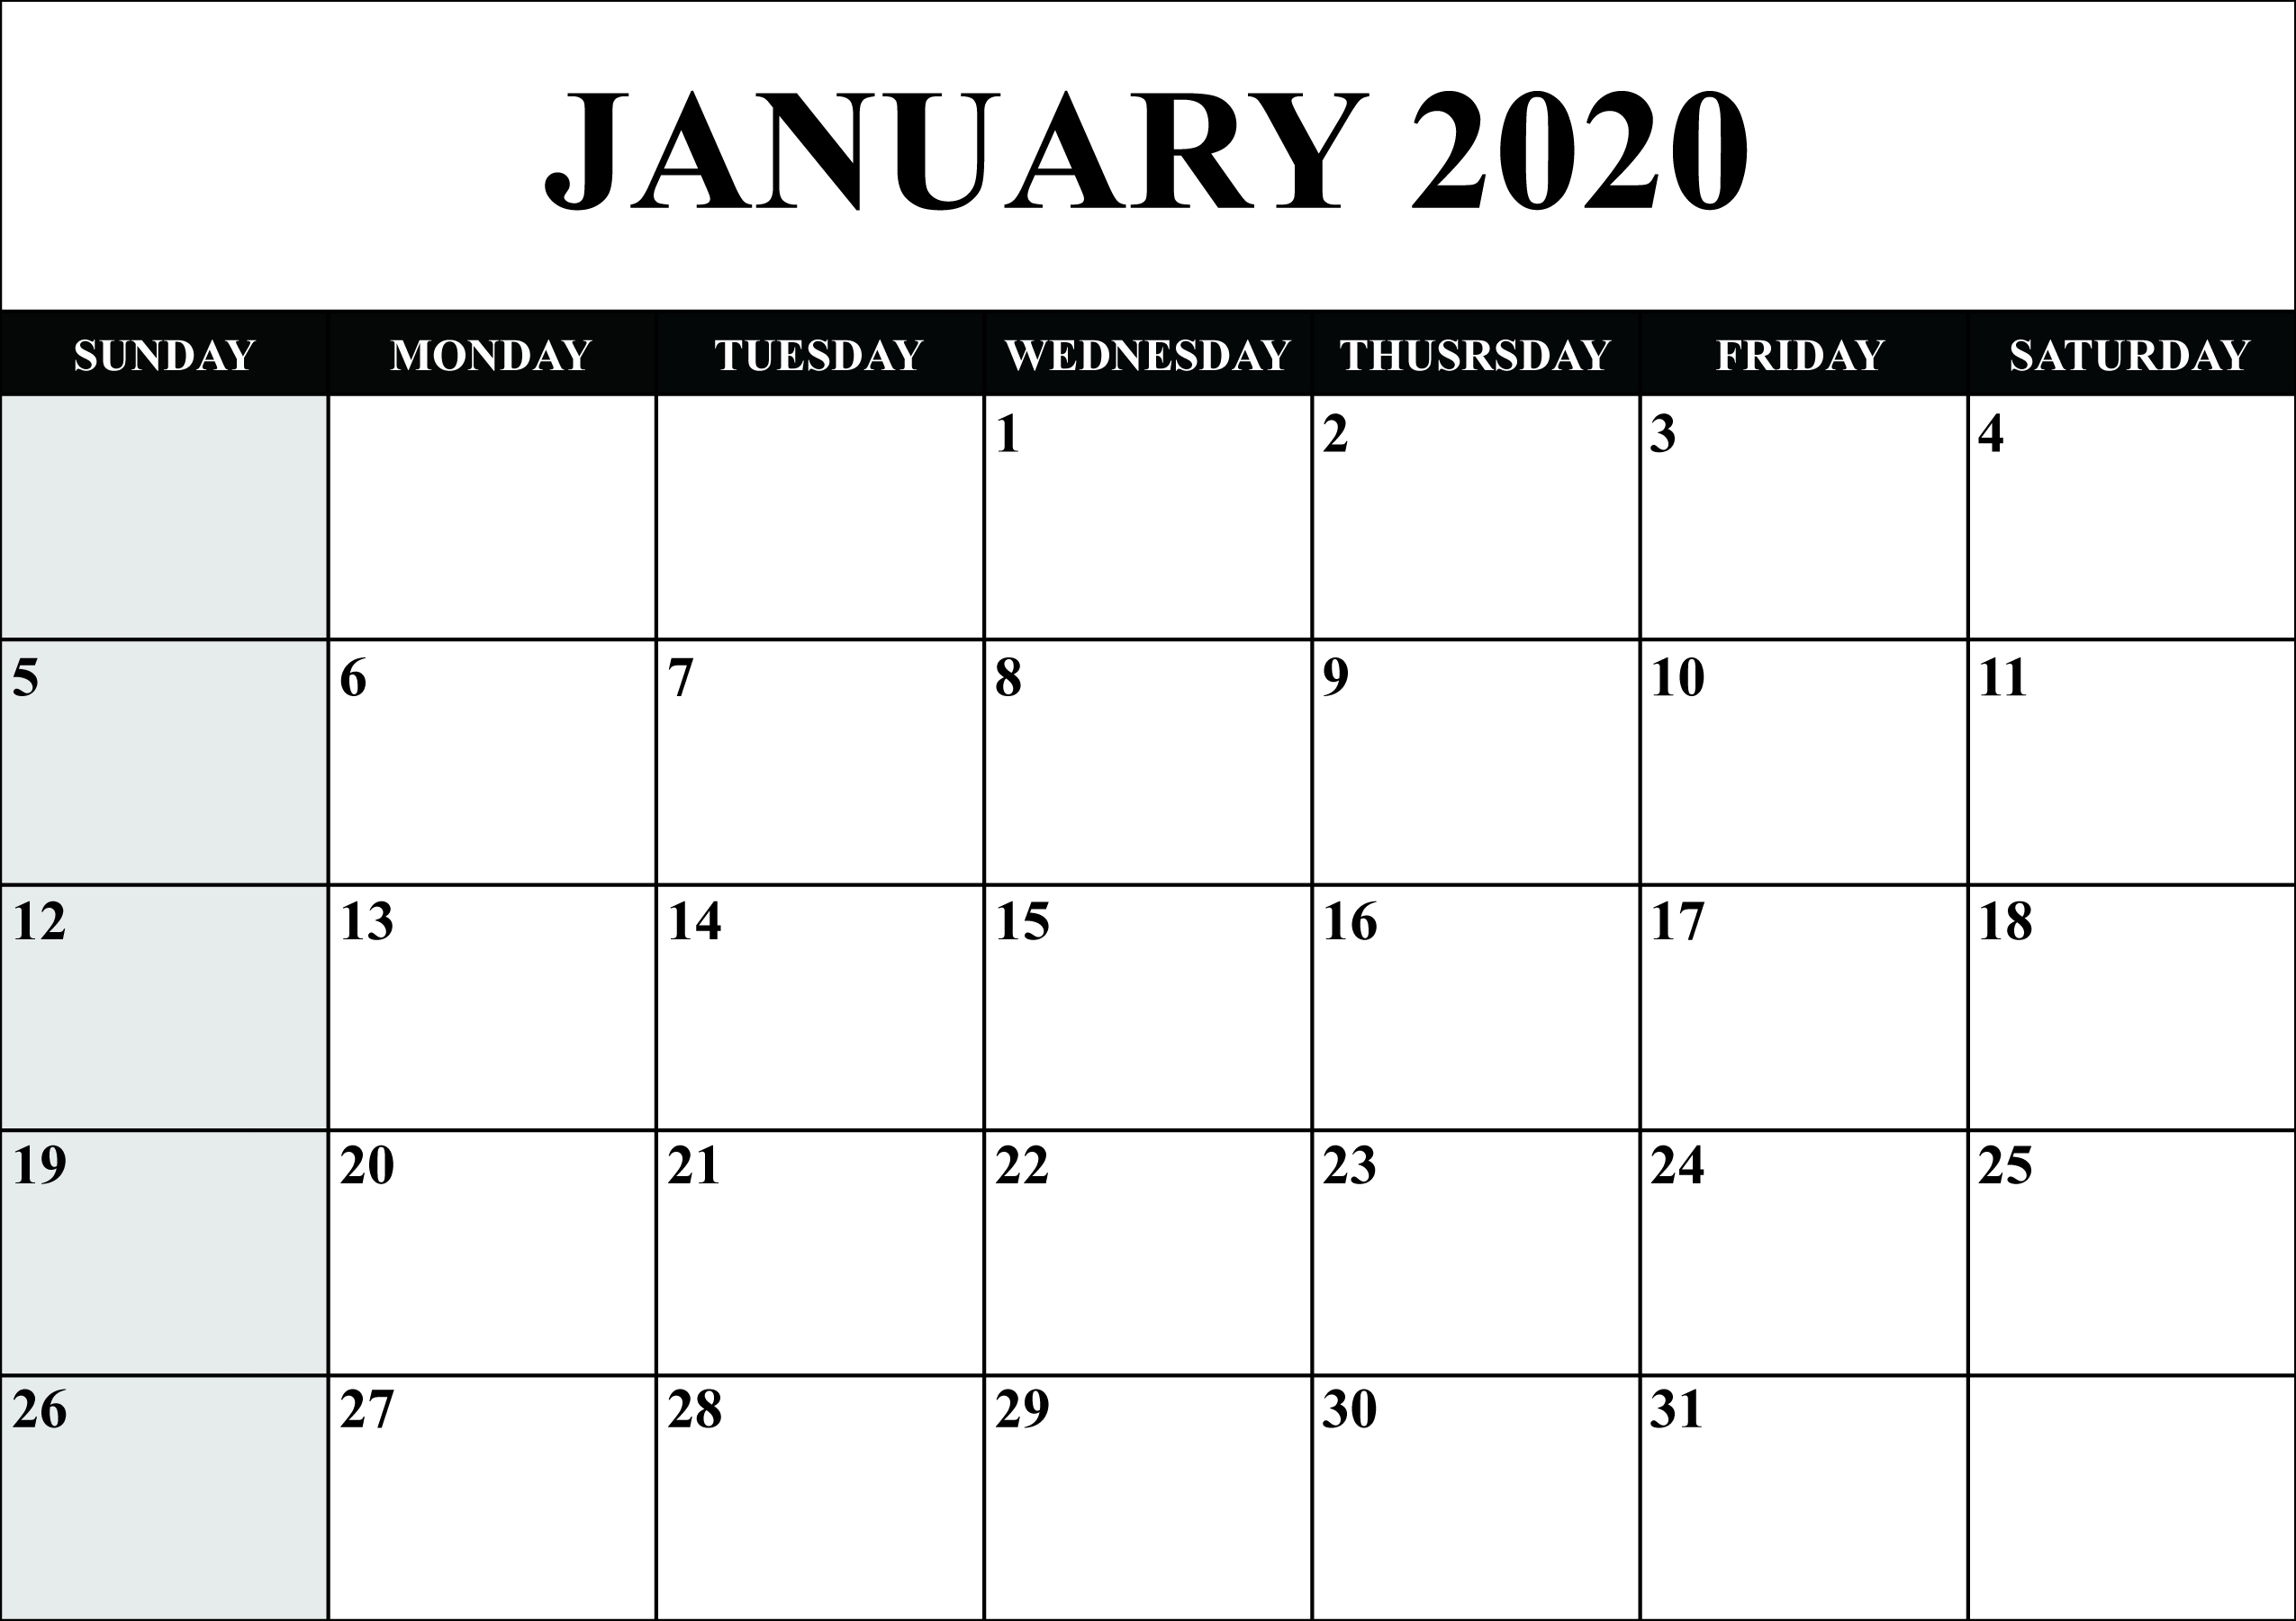 Free Blank January 2020 Calendar Printable In Pdf, Word-Free January 2020 Calendar